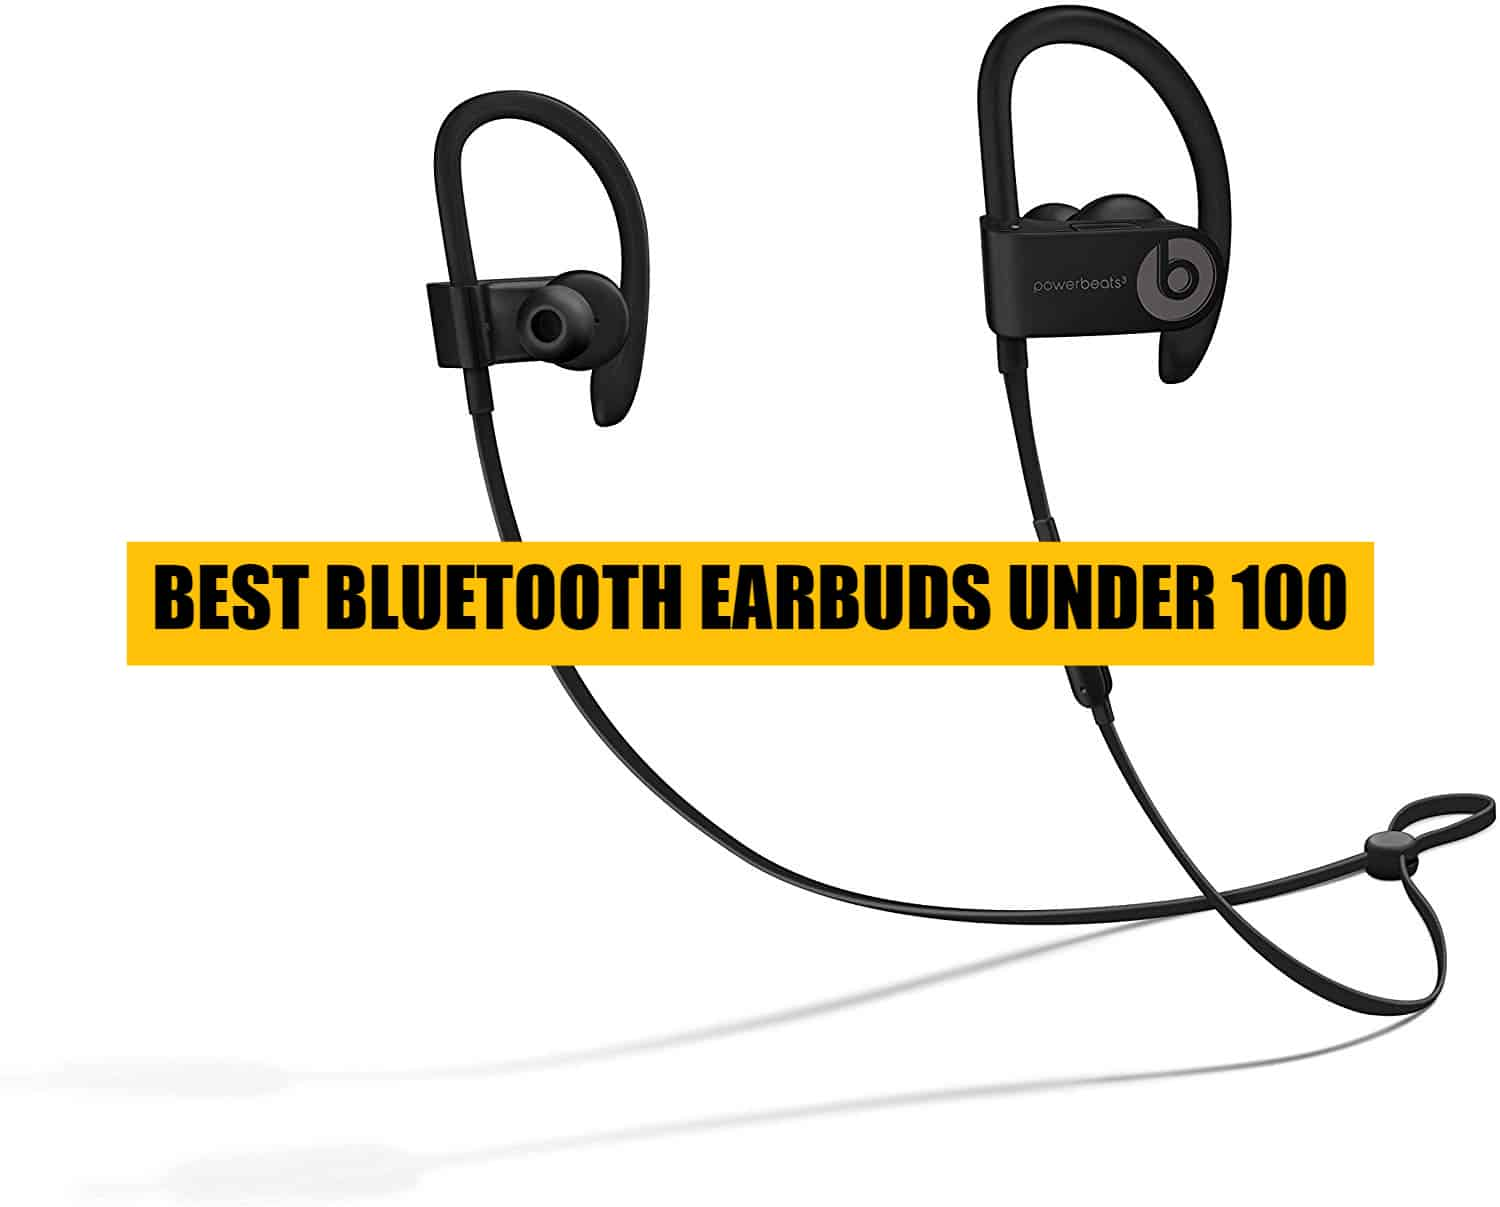 Best Bluetooth Earbuds Under 100 With Buying Guide Noisygeeks